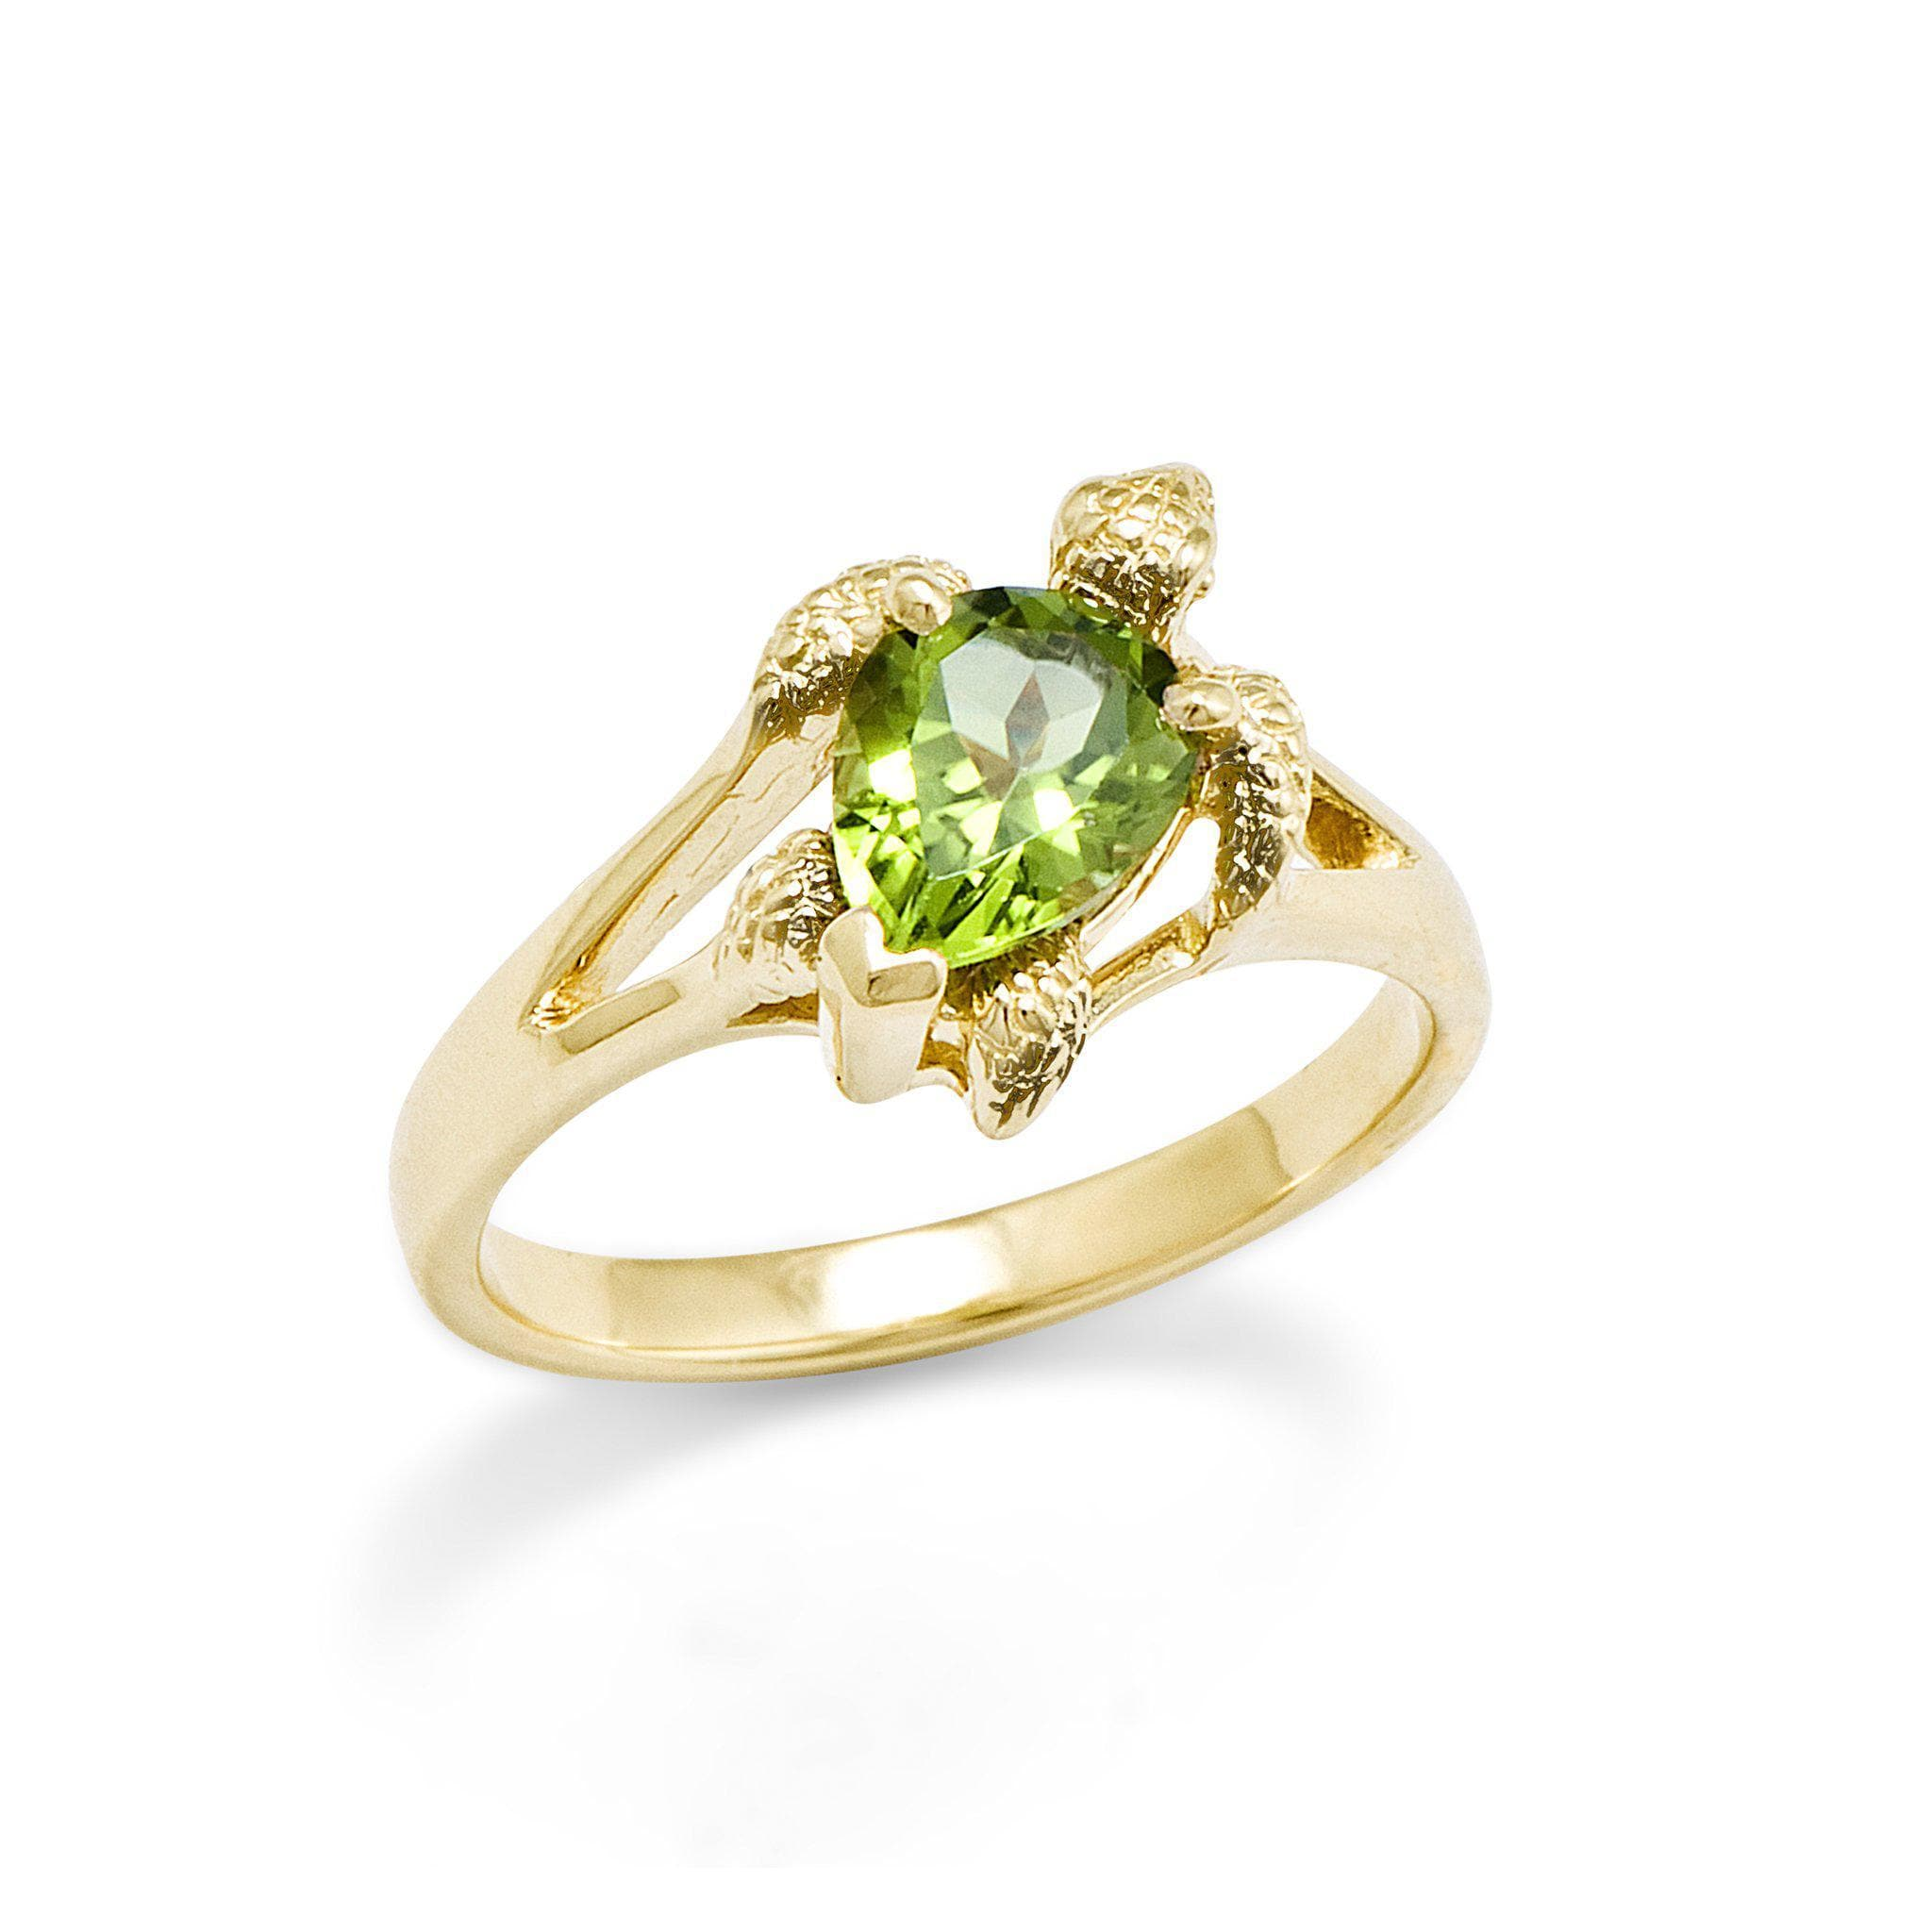 ring wedding engagement peridot white diamond rings vintage gold boutique image gemstone